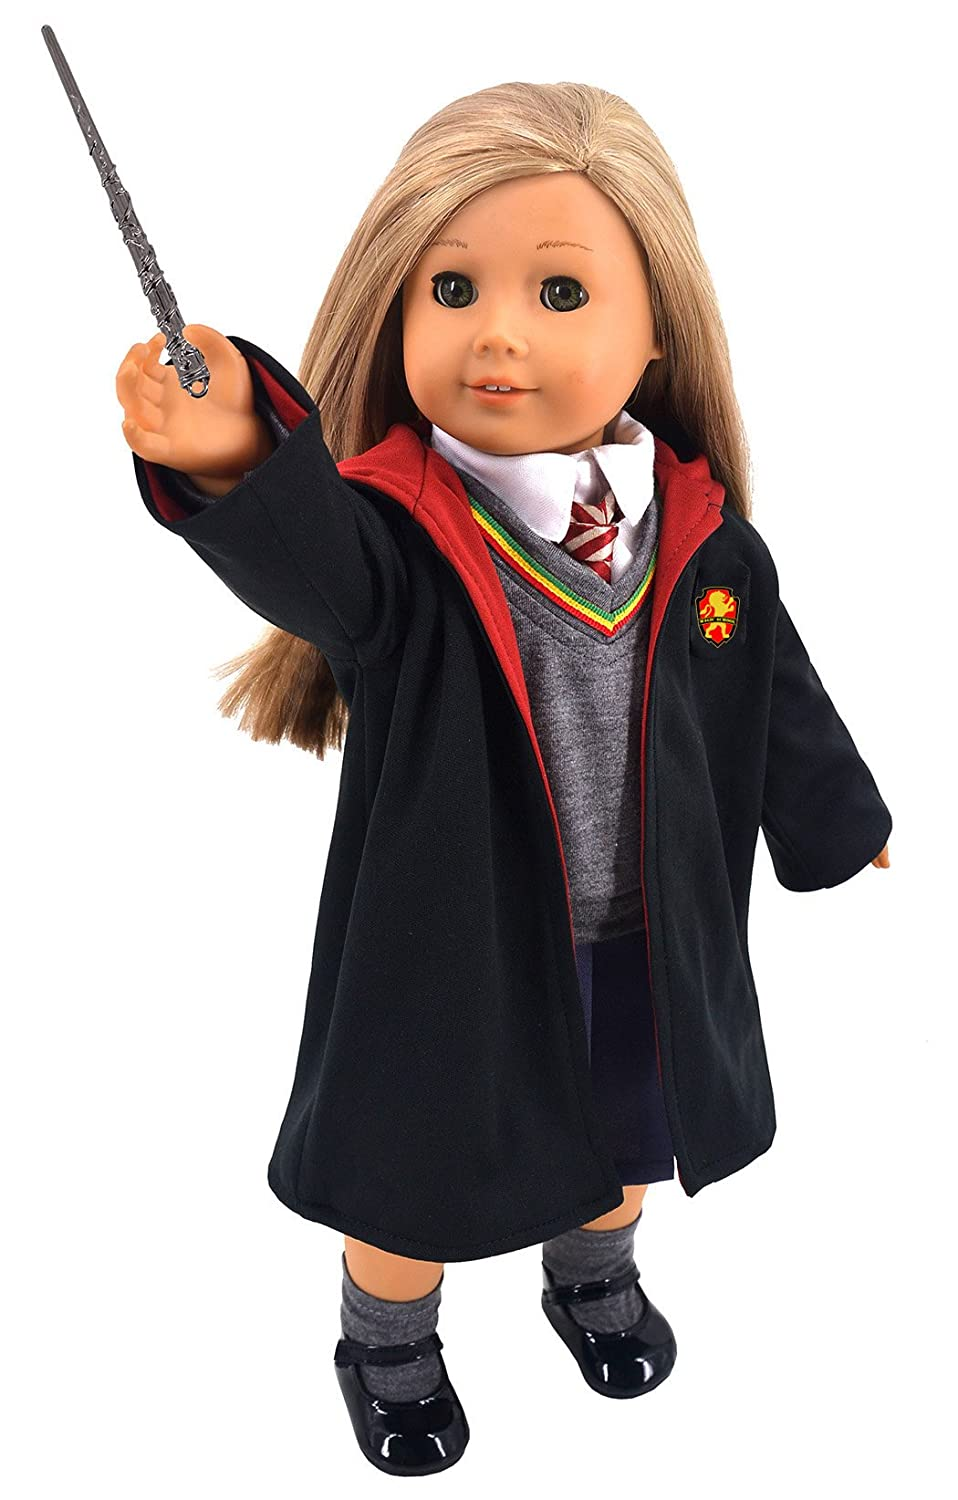 ebuddy Hermione Granger- Inspired School Uniform Doll Clothes Shoes for American Girl Dolls CADZ16HM01